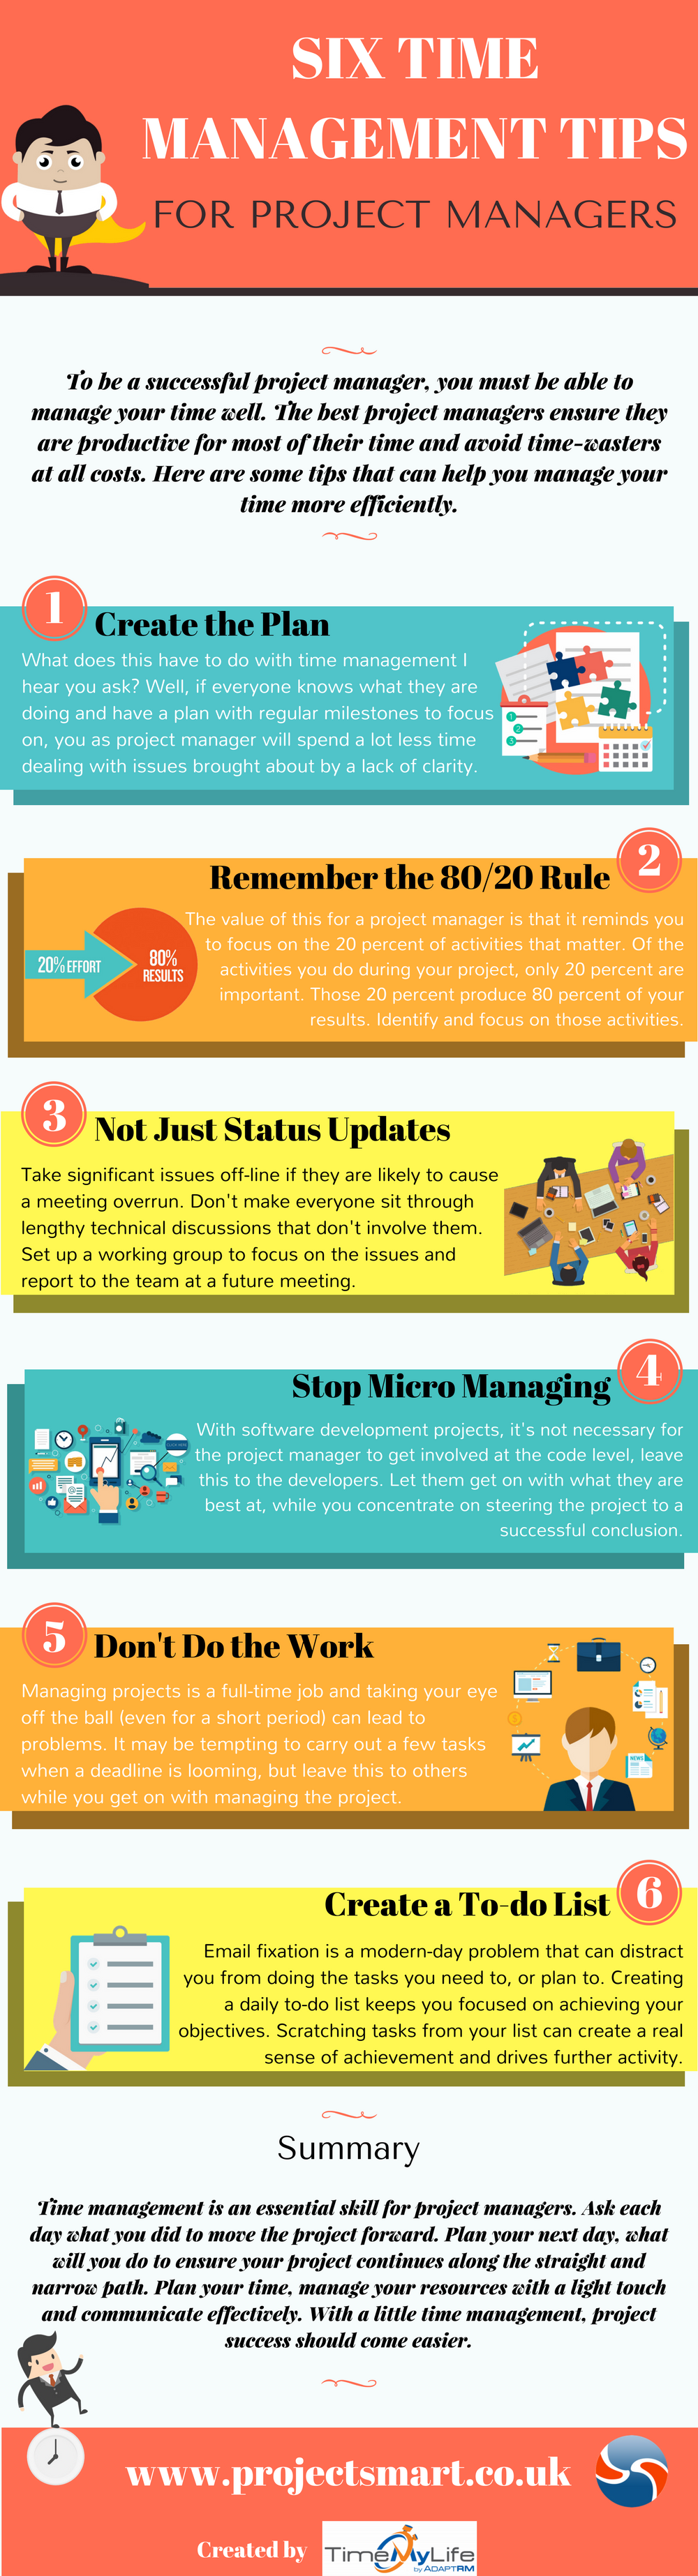 Six Time Management Tips Infographic